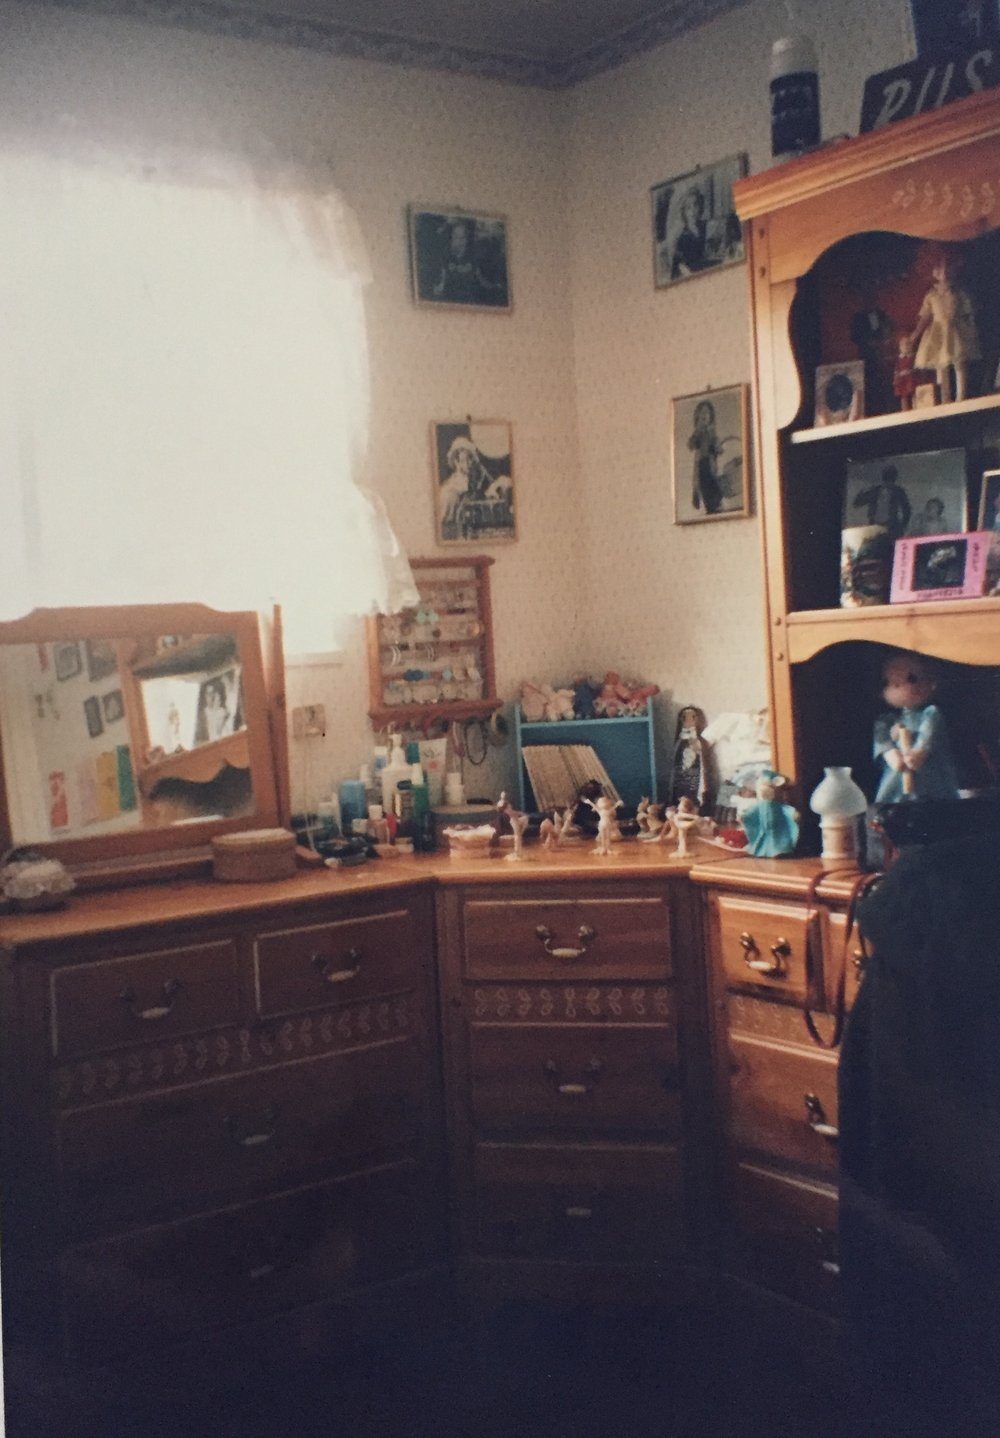 A teenager's bedroom in the 1990's.